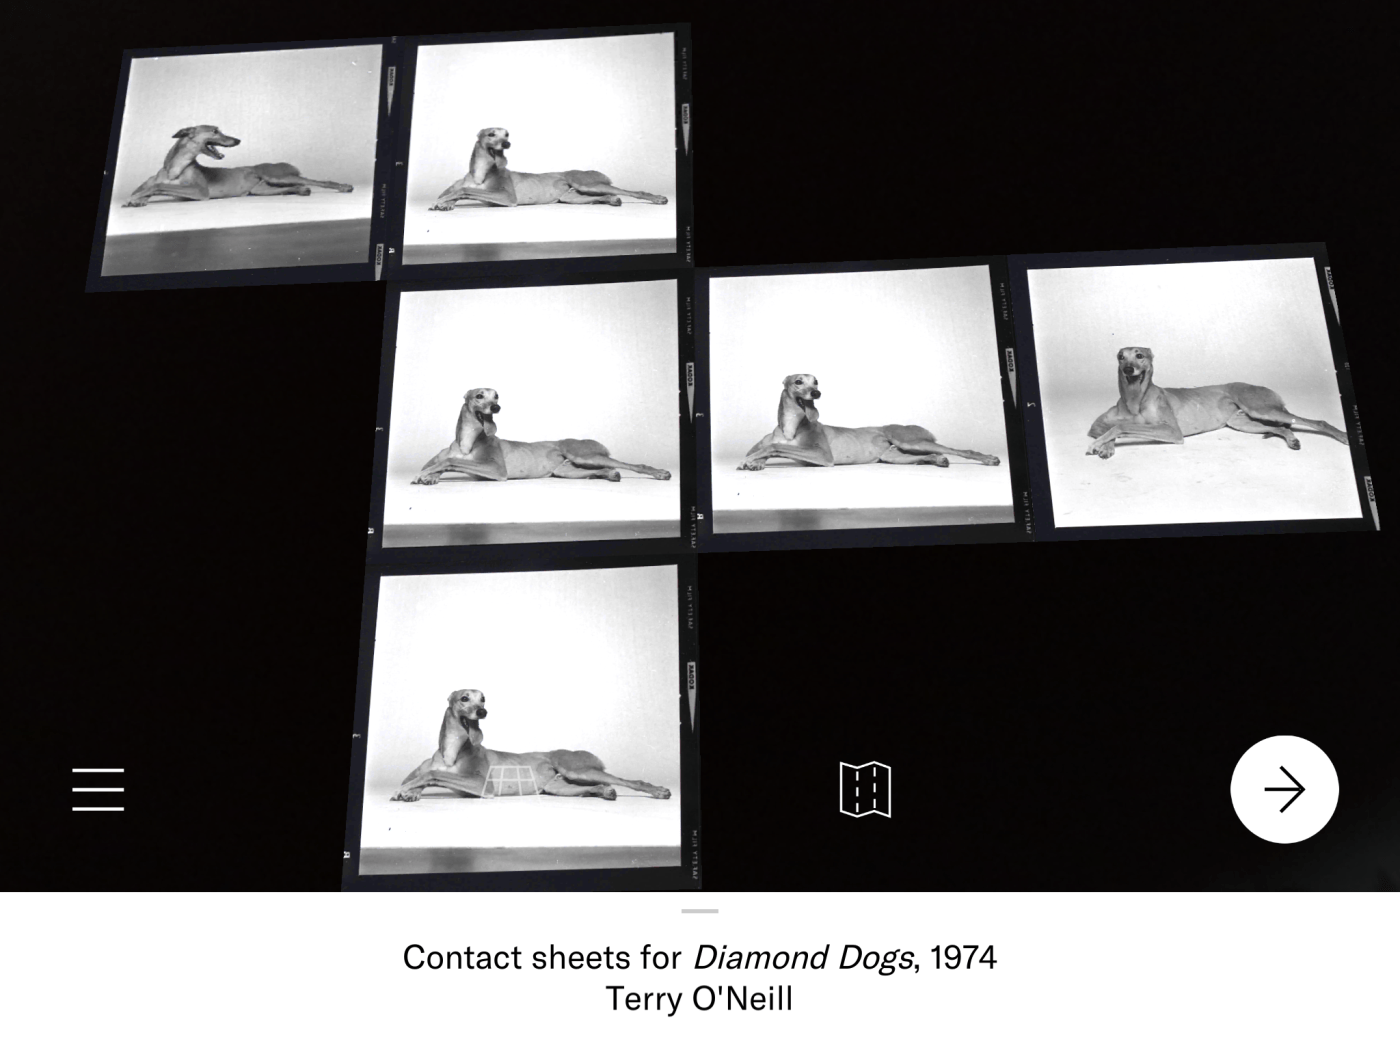 Screenshot of contact sheets for Diamond Dogs